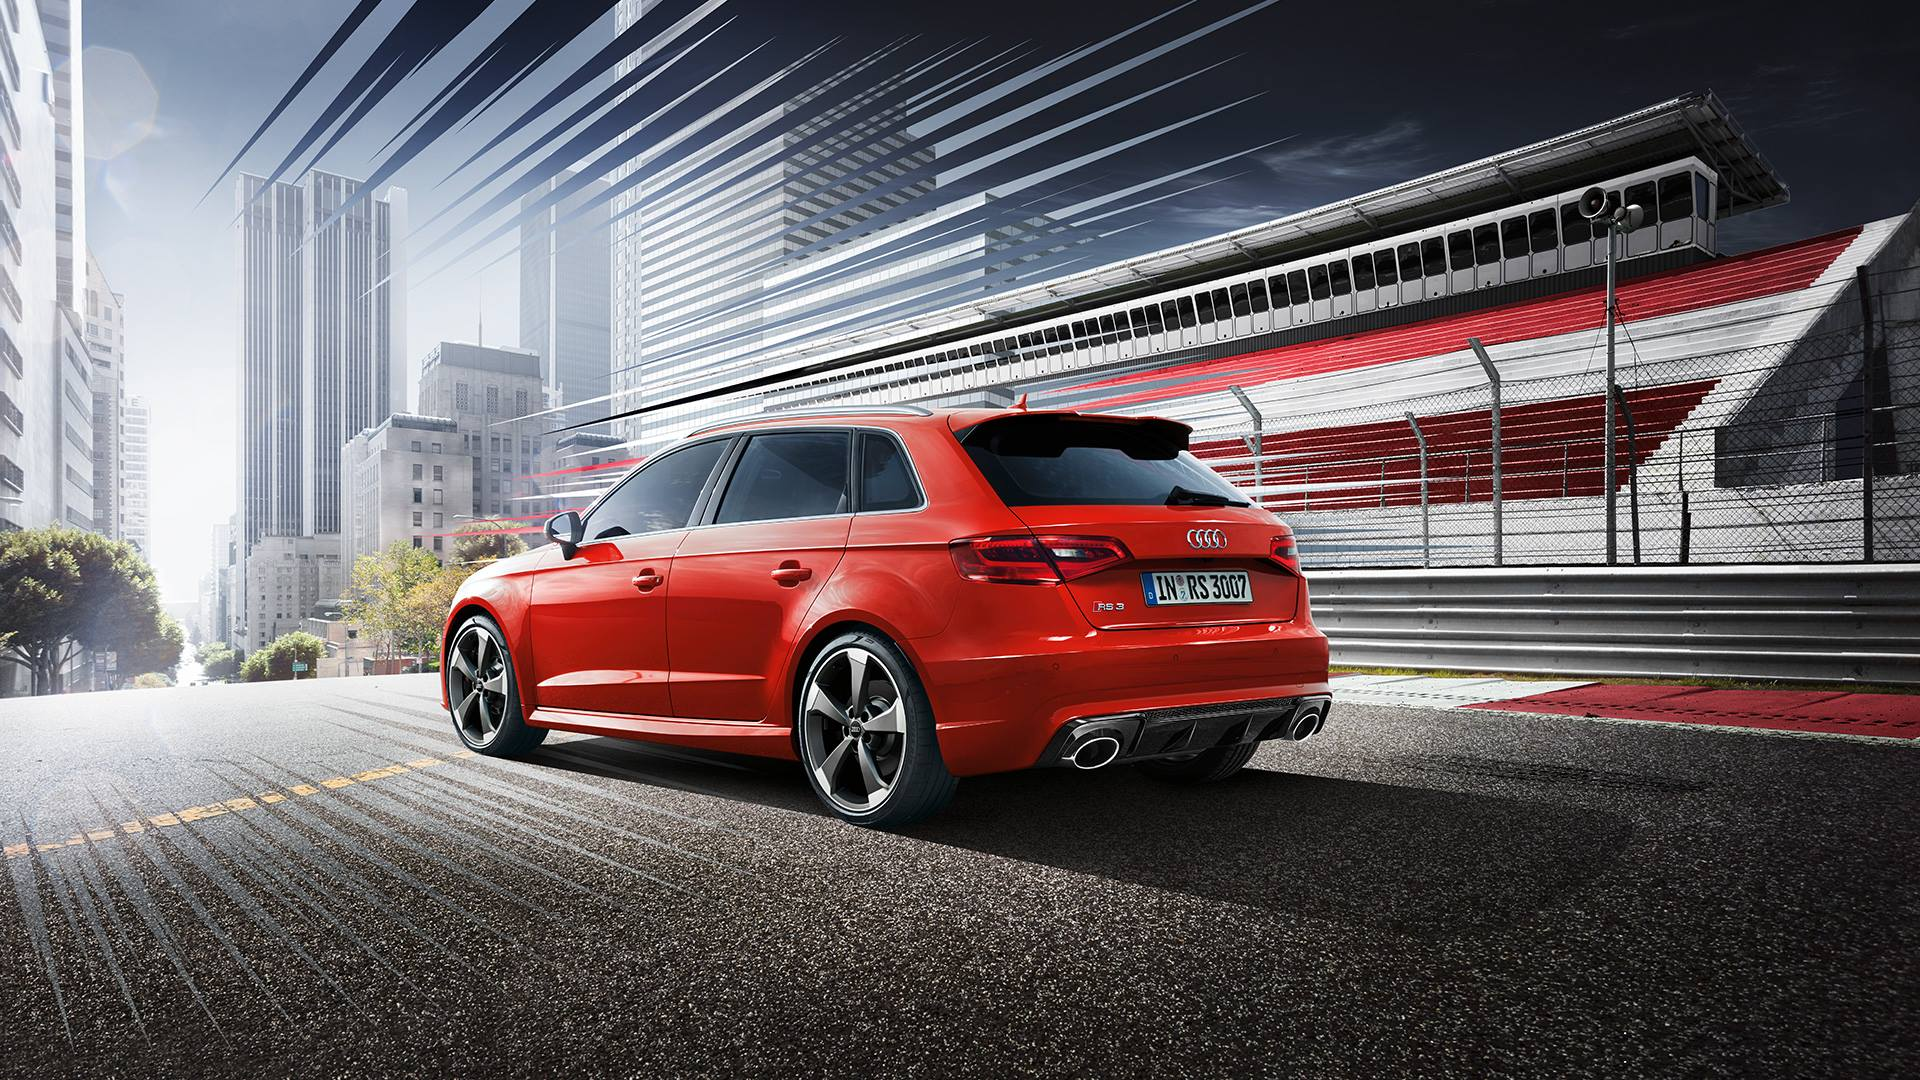 Audi Rs3 Wallpaper Hd New Audi Rs3 Sportback Revealed Has 367 Hp 2 5 Tfsi